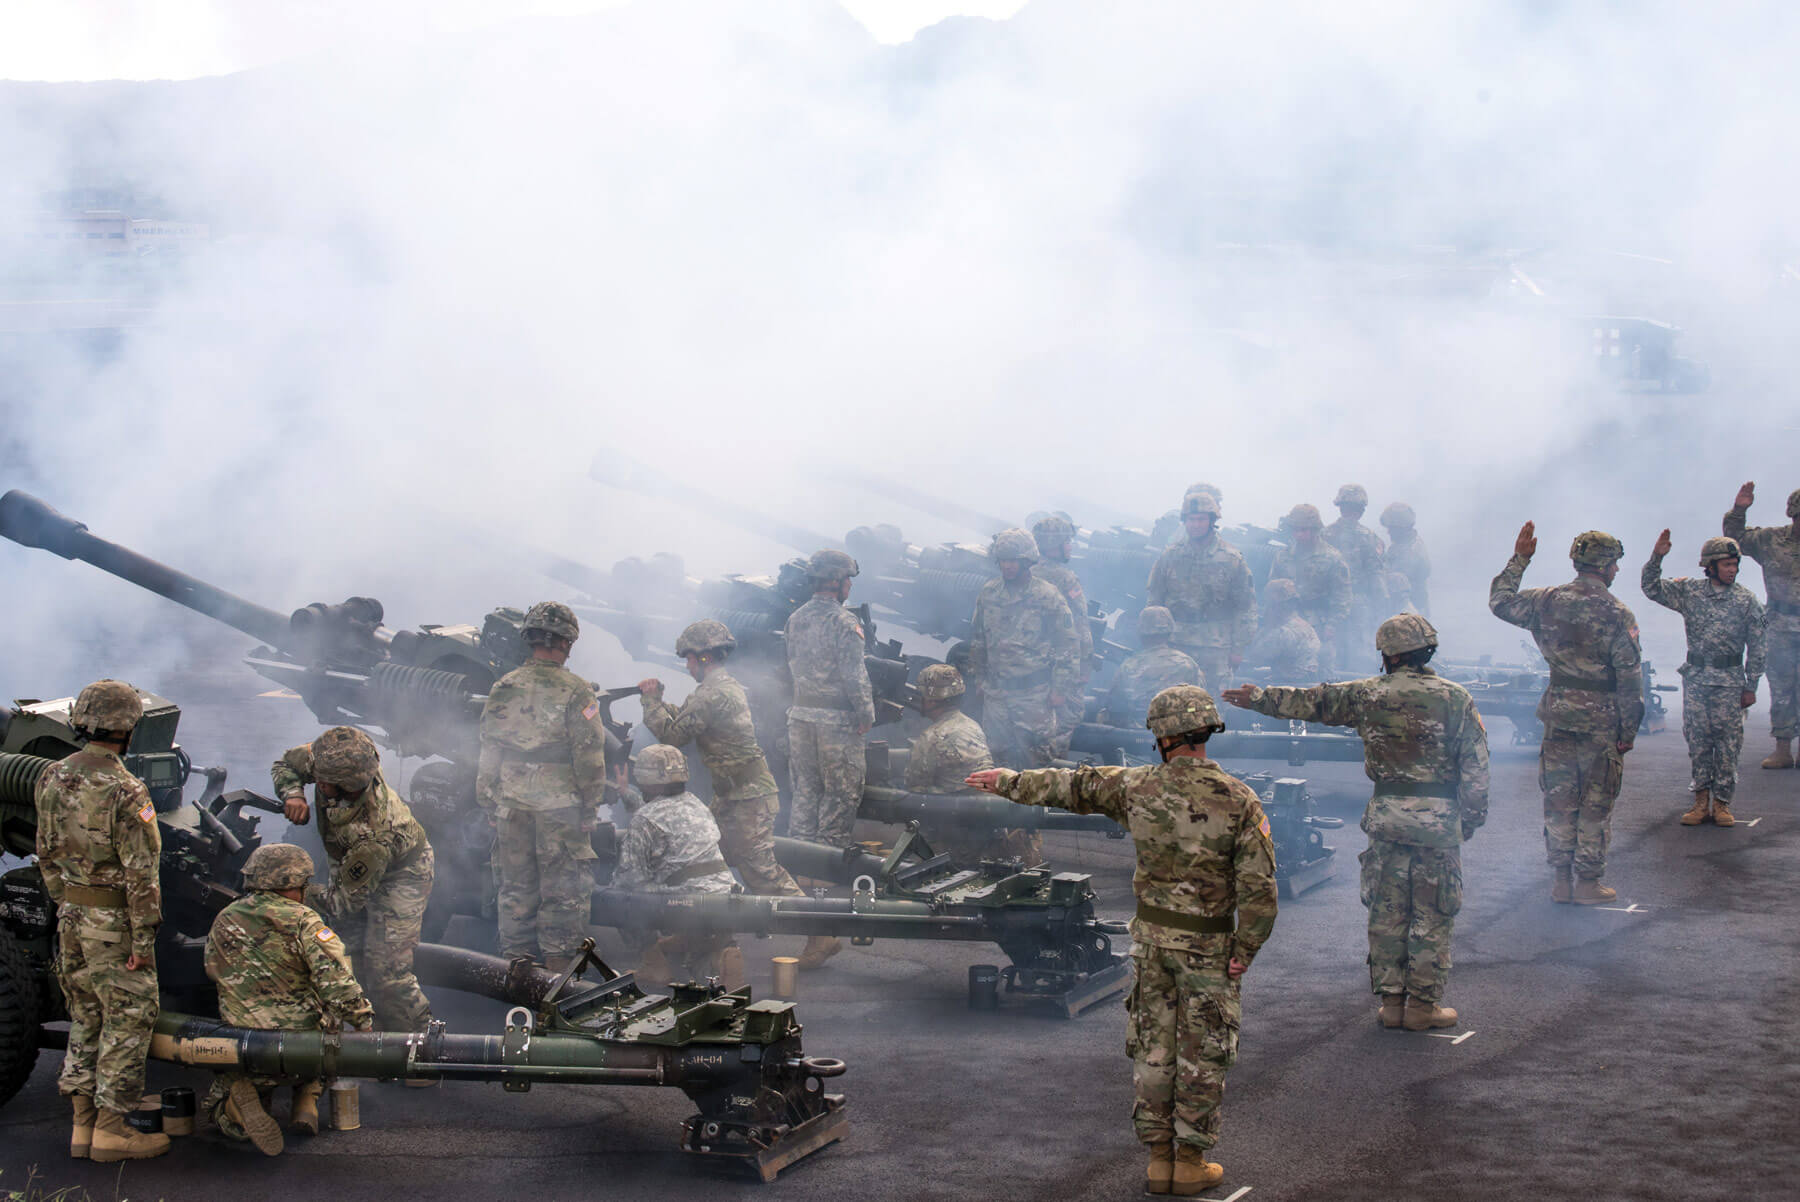 The 487th Field Artillery renders honors during the Hawaii Army National Guard Change of Command ceremony at Wheeler Army Airfield, Hawaii. All Hawaii Army National Guard units and service members were in attendance at the ceremony.